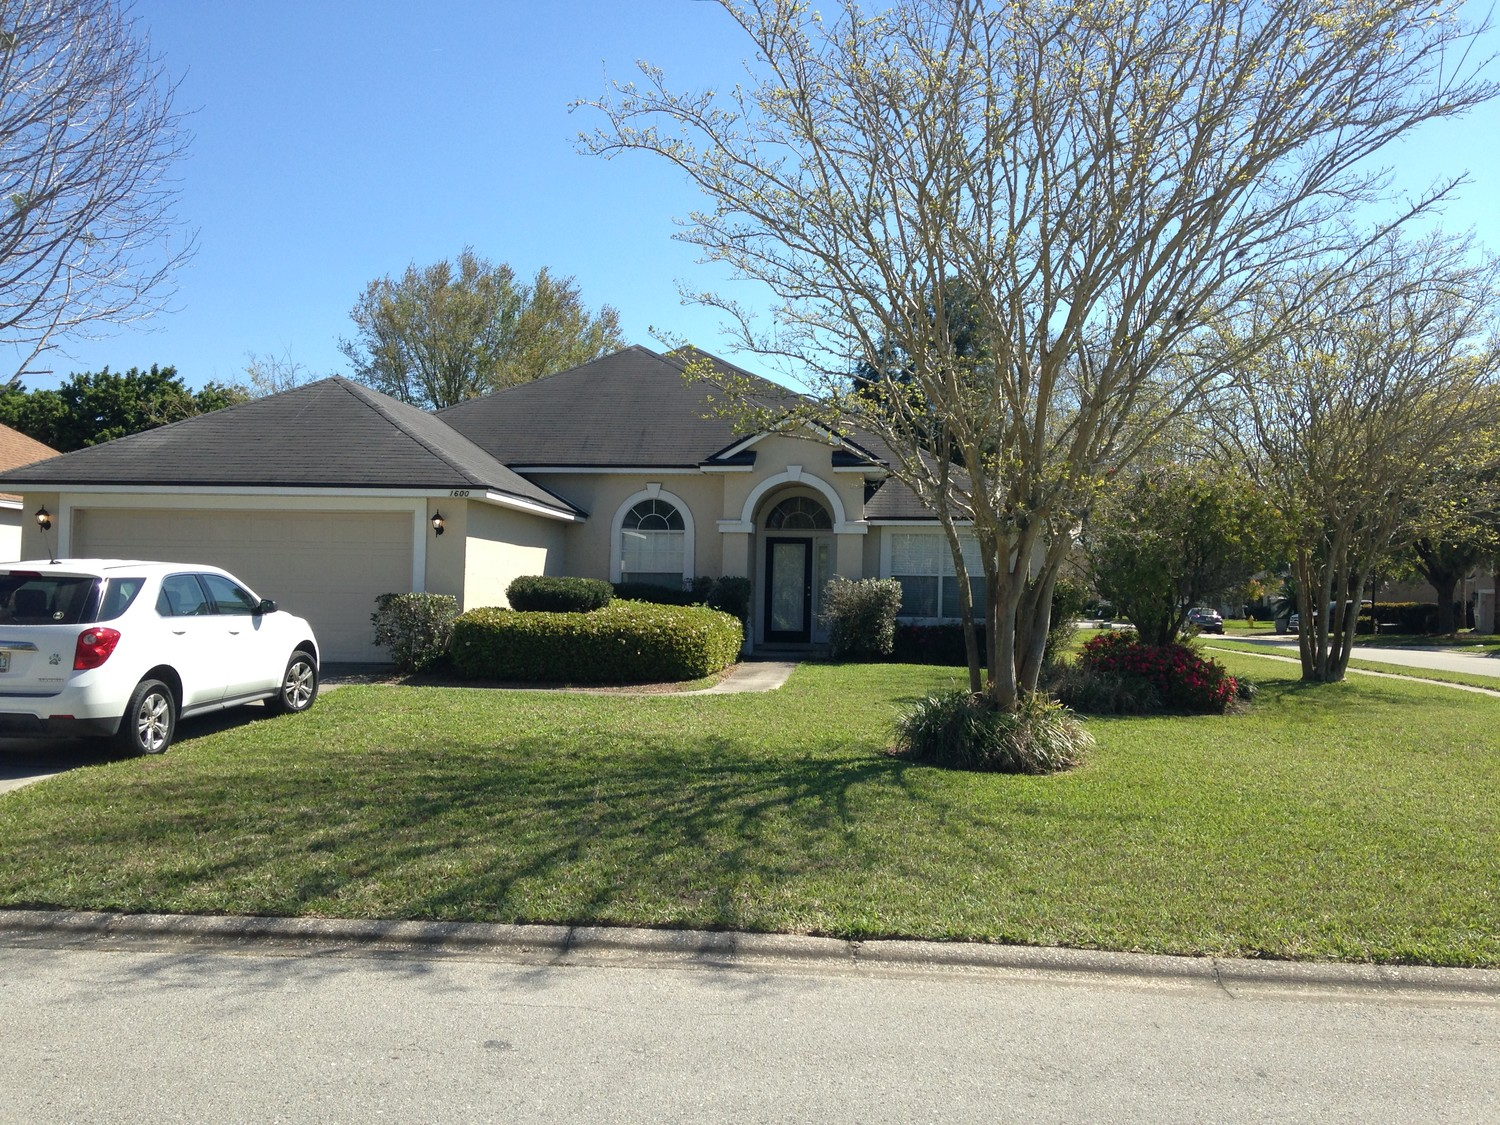 Clark lives at 1600 Merroway Lane in Ponte Vedra's Walden Chase neighborhood.